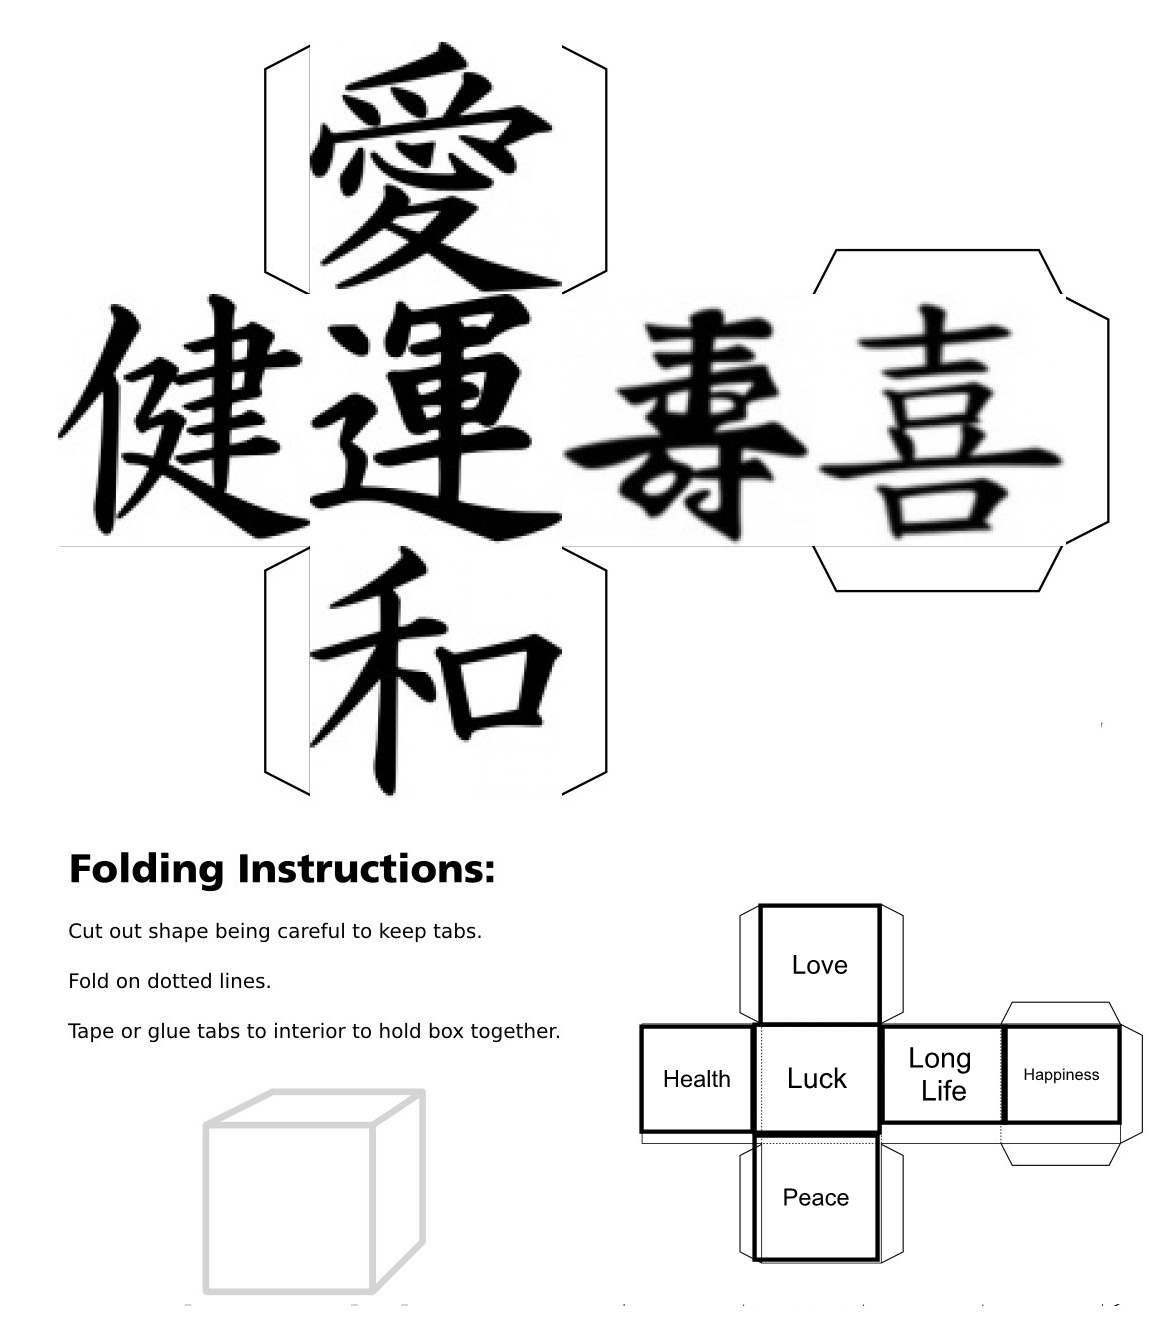 3D cube, dice, Good Luck, health, love, luck, peace, long life, happiness Chinese Good Luck, Chinese Calligraphy, Chinese